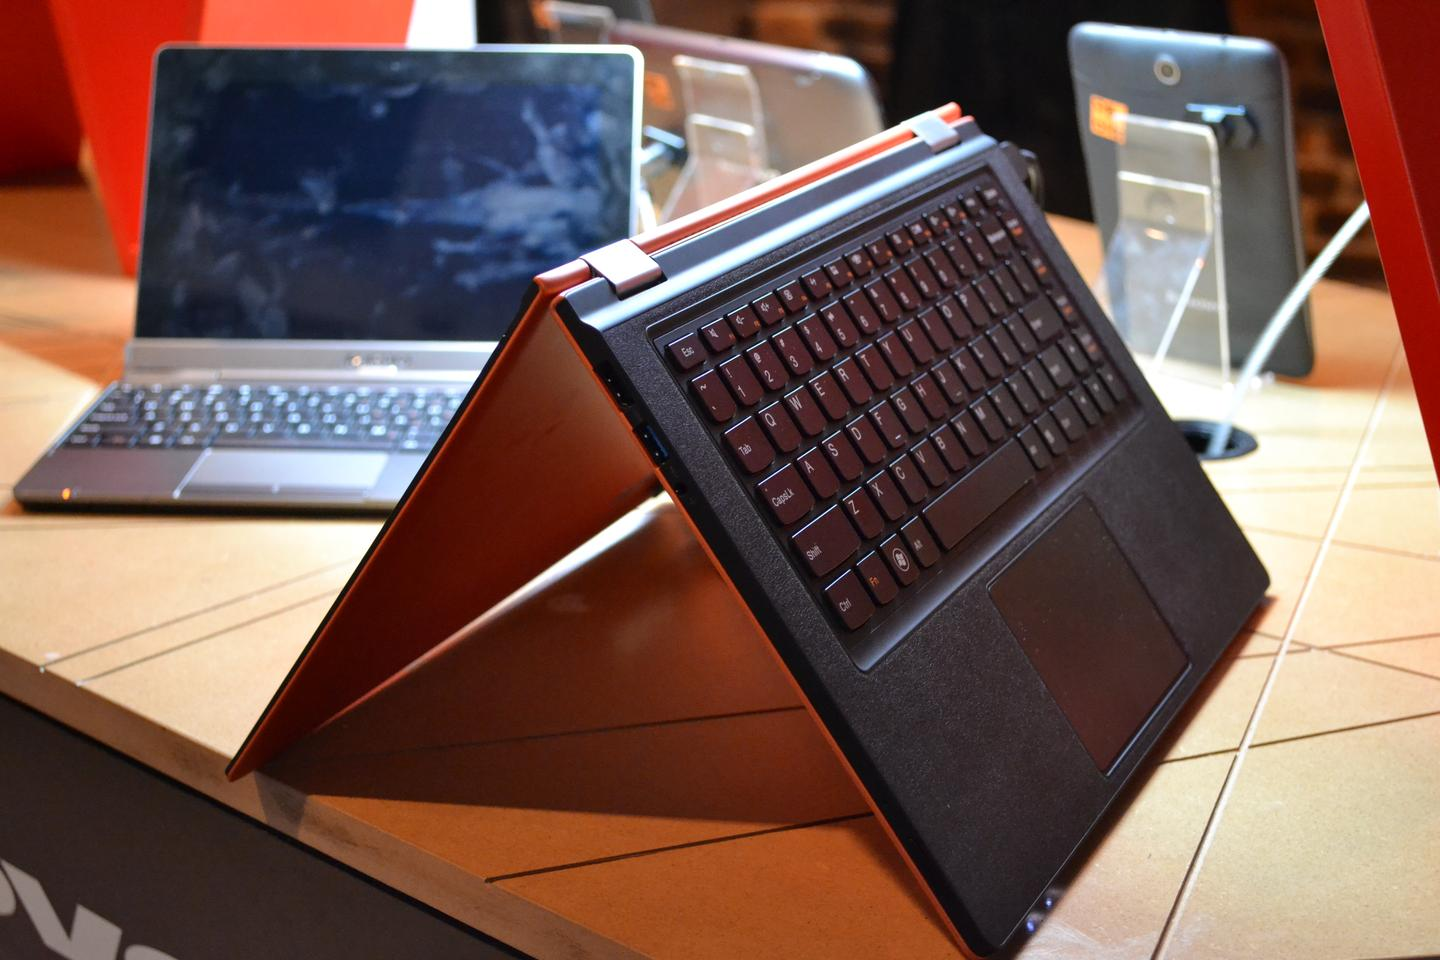 The YOGA 13 in tent mode at IFA 2012